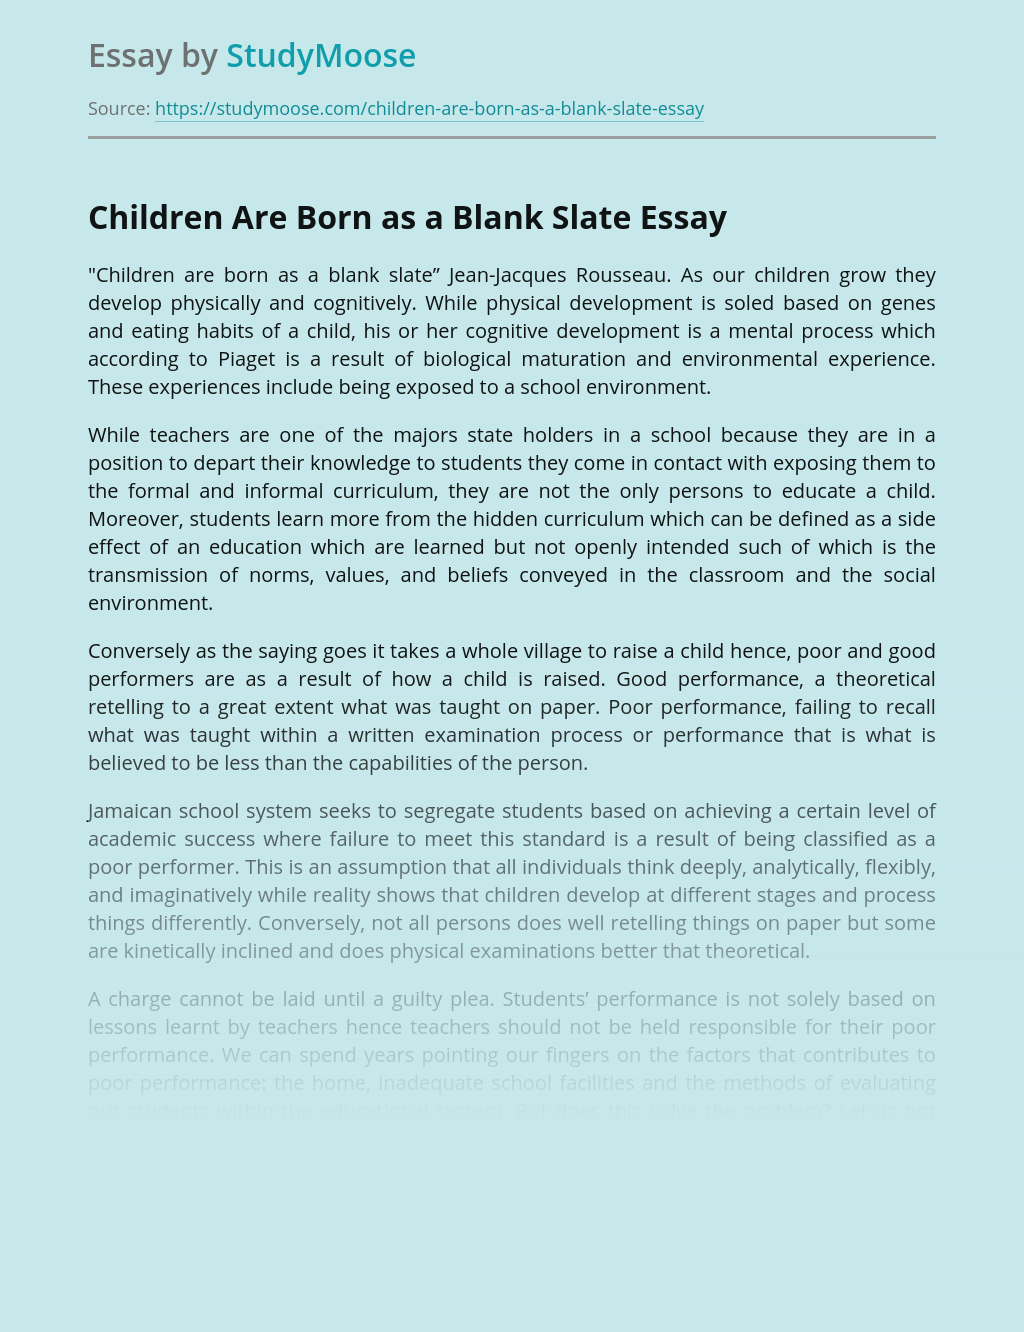 Children Are Born as a Blank Slate